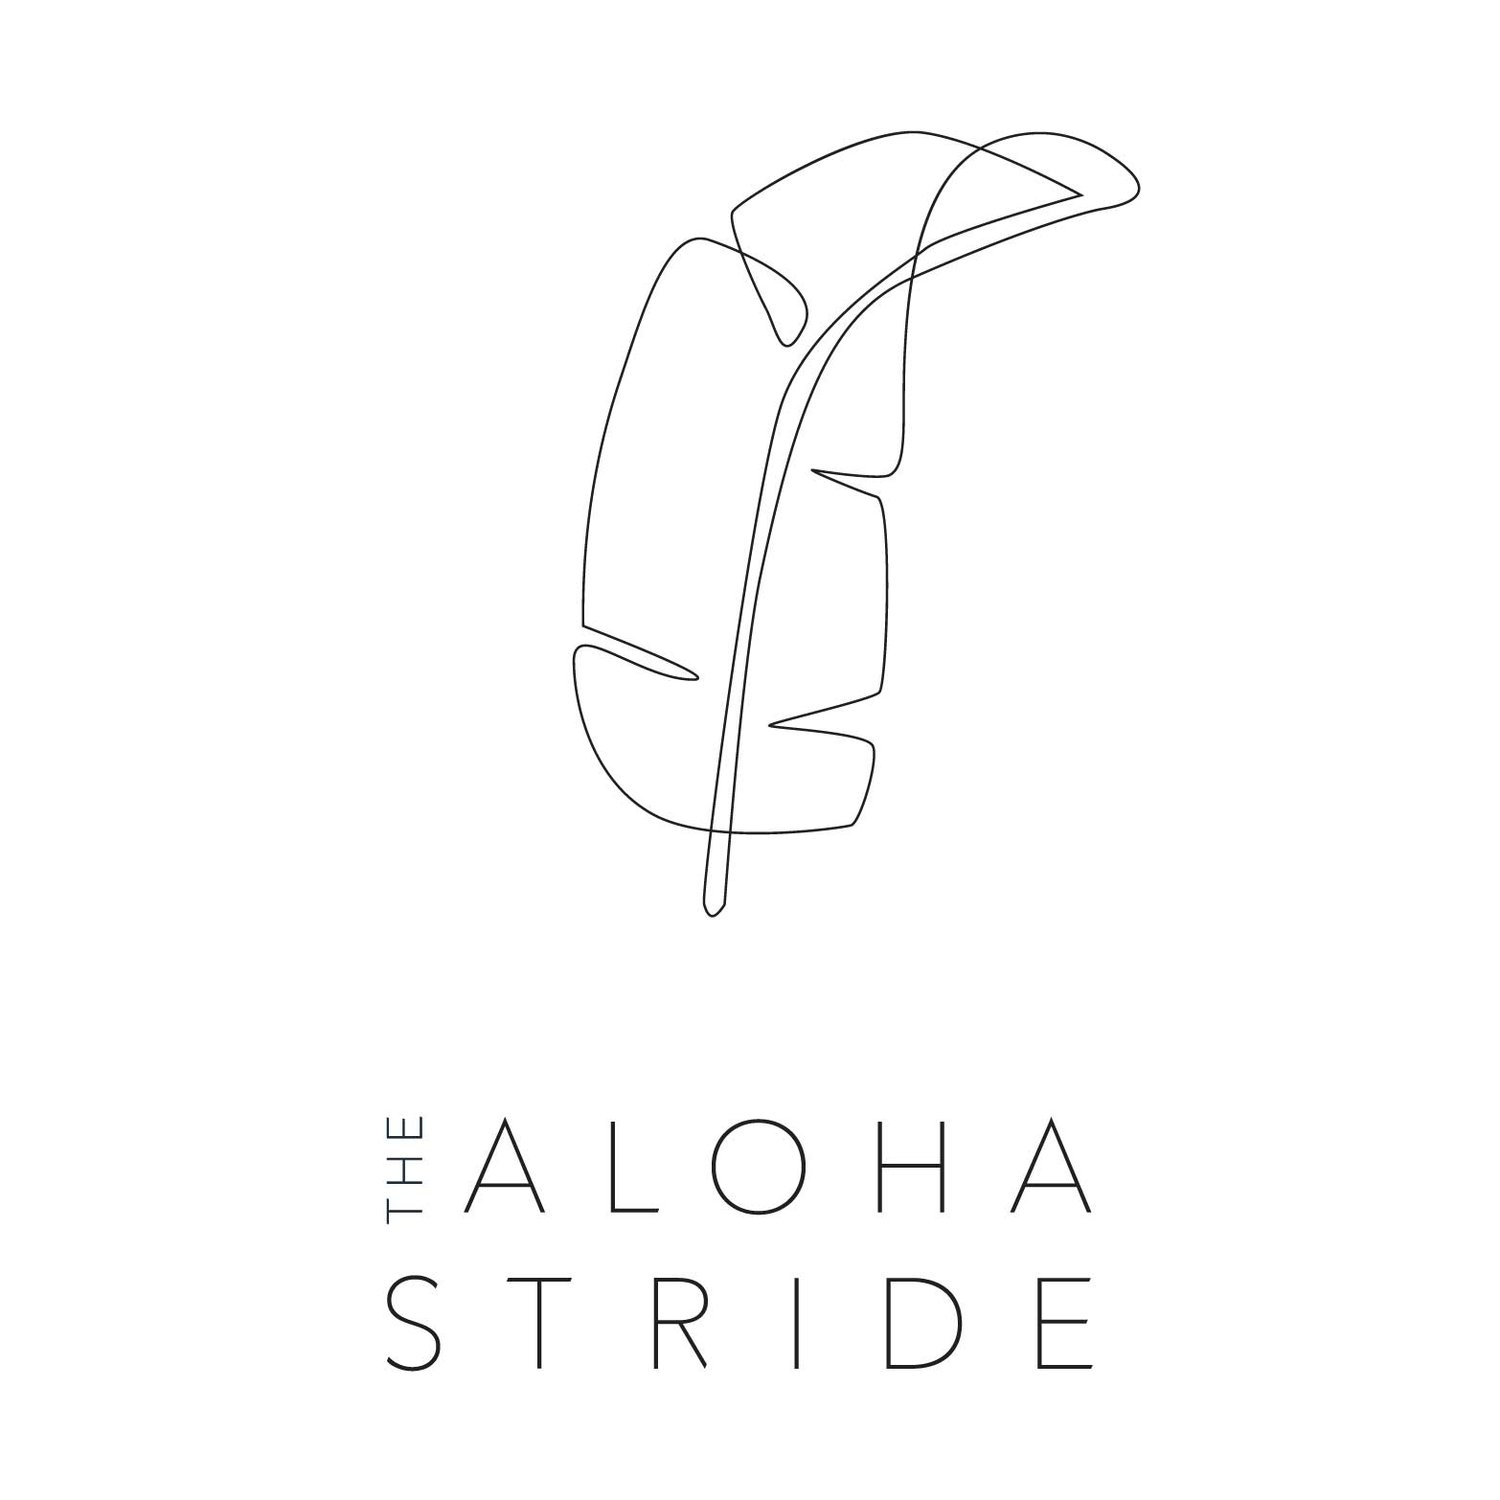 The Aloha Stride